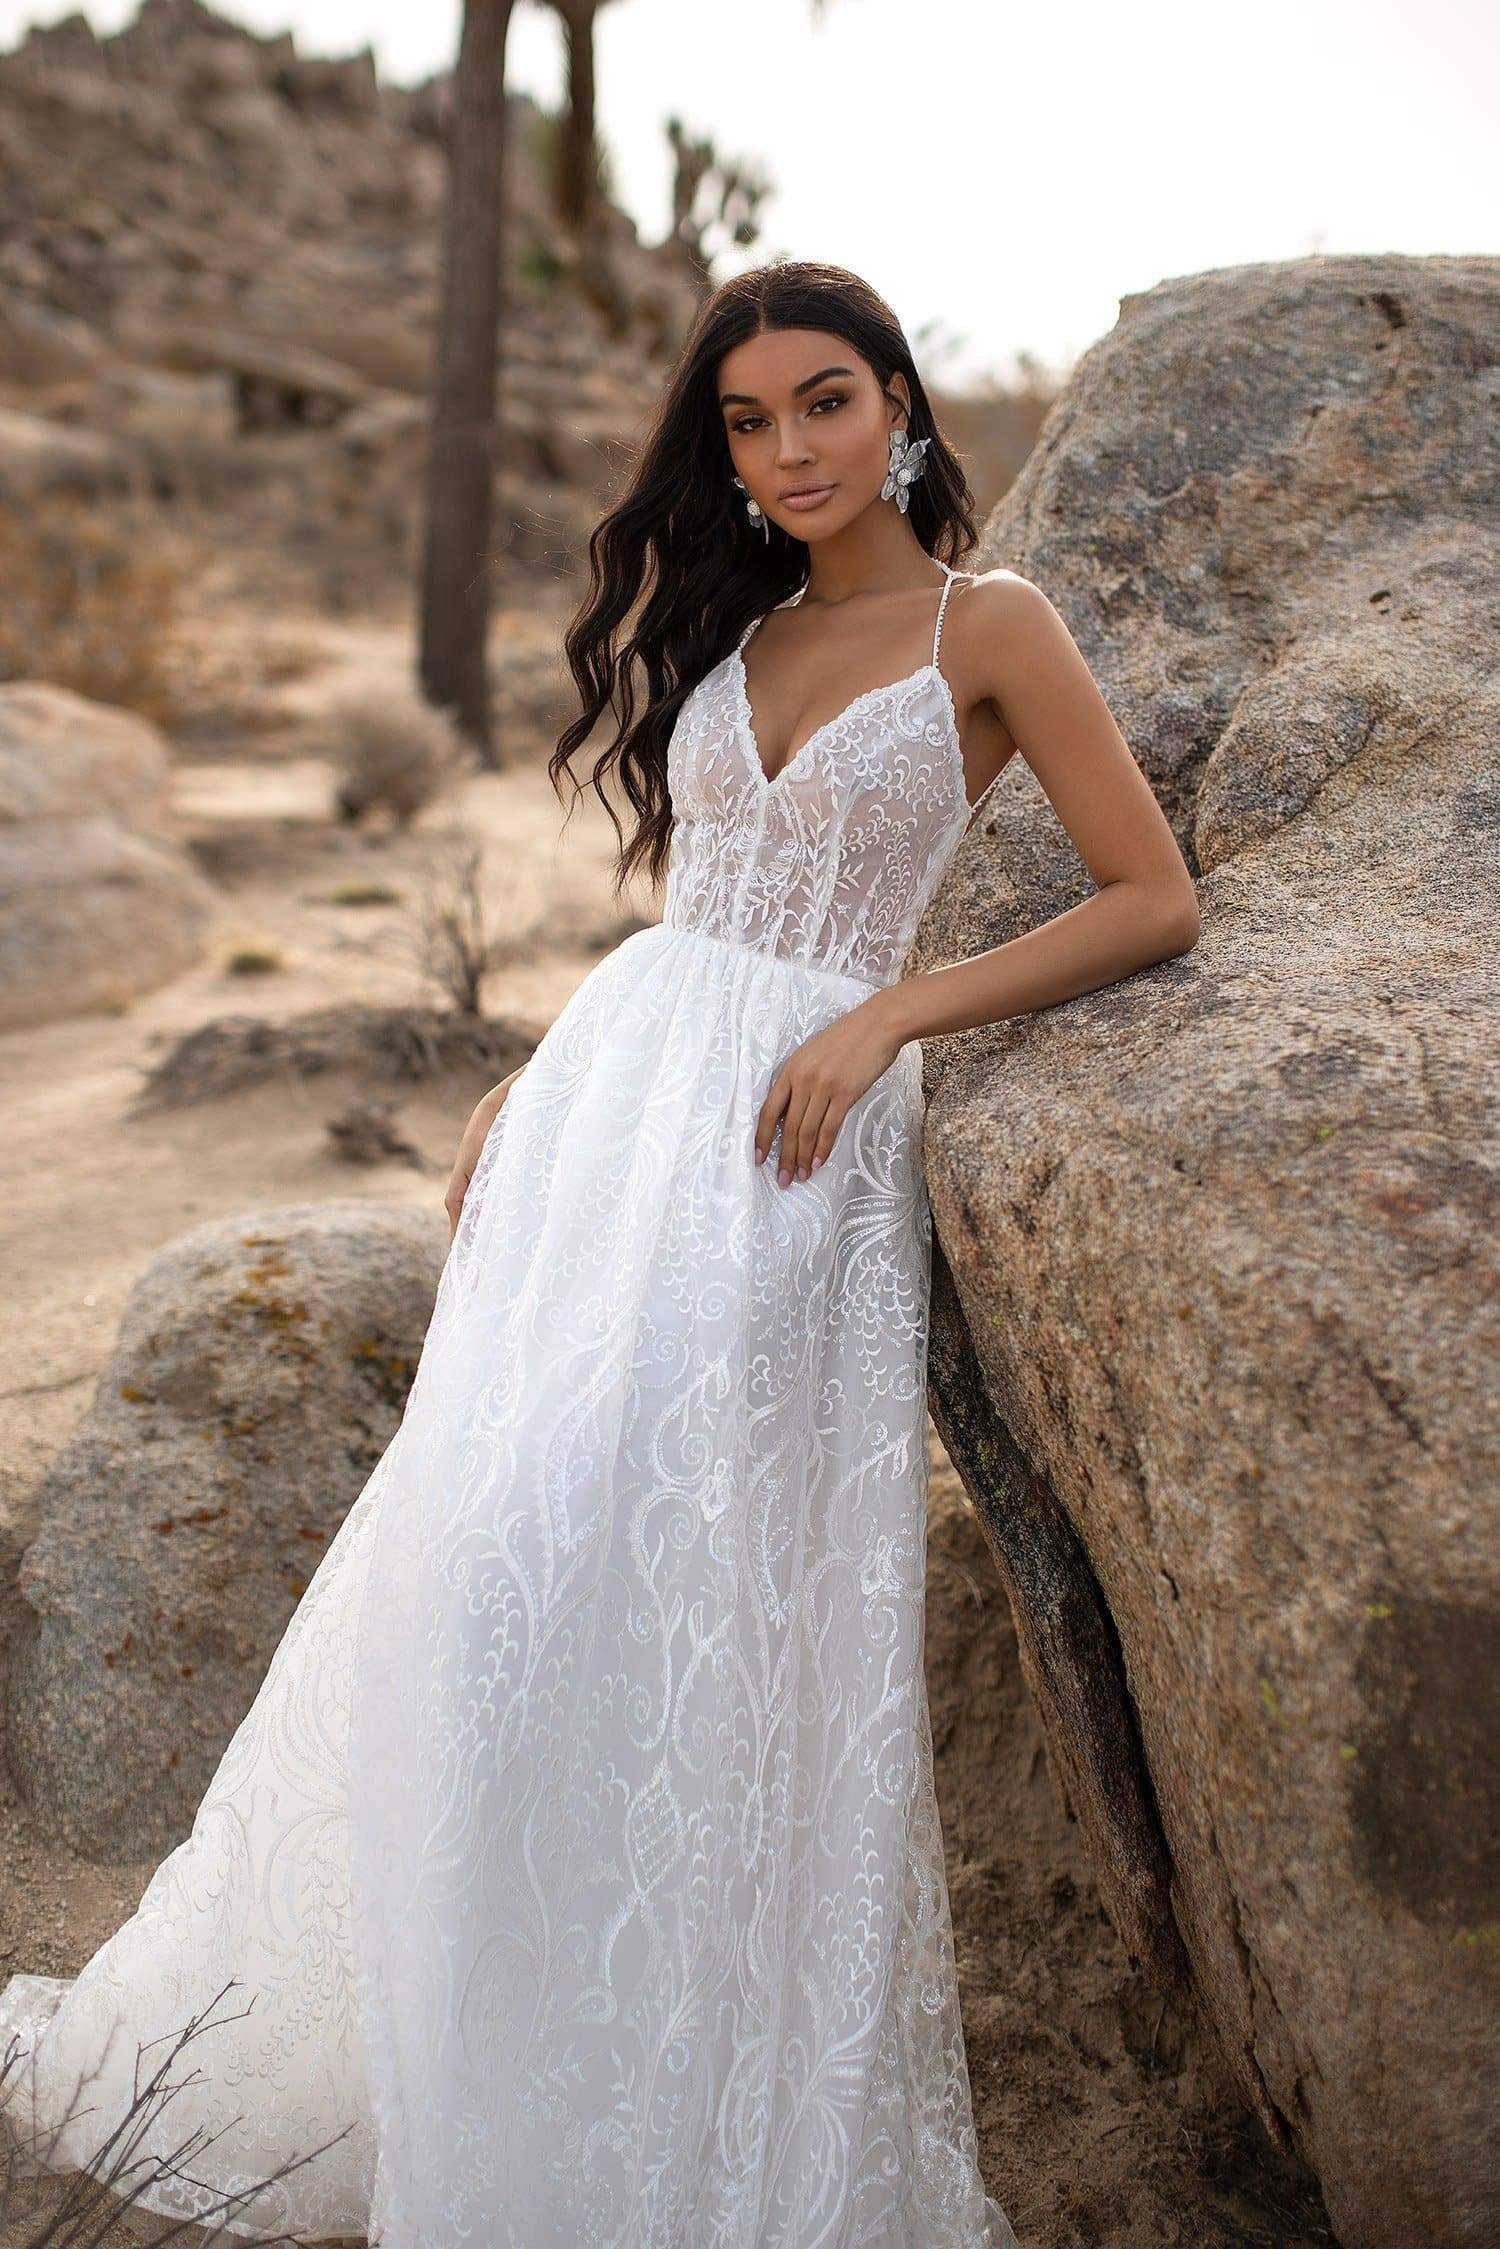 A&N Isla - White Patterned Lace & Tulle Bridal Gown with Lace-Up Back